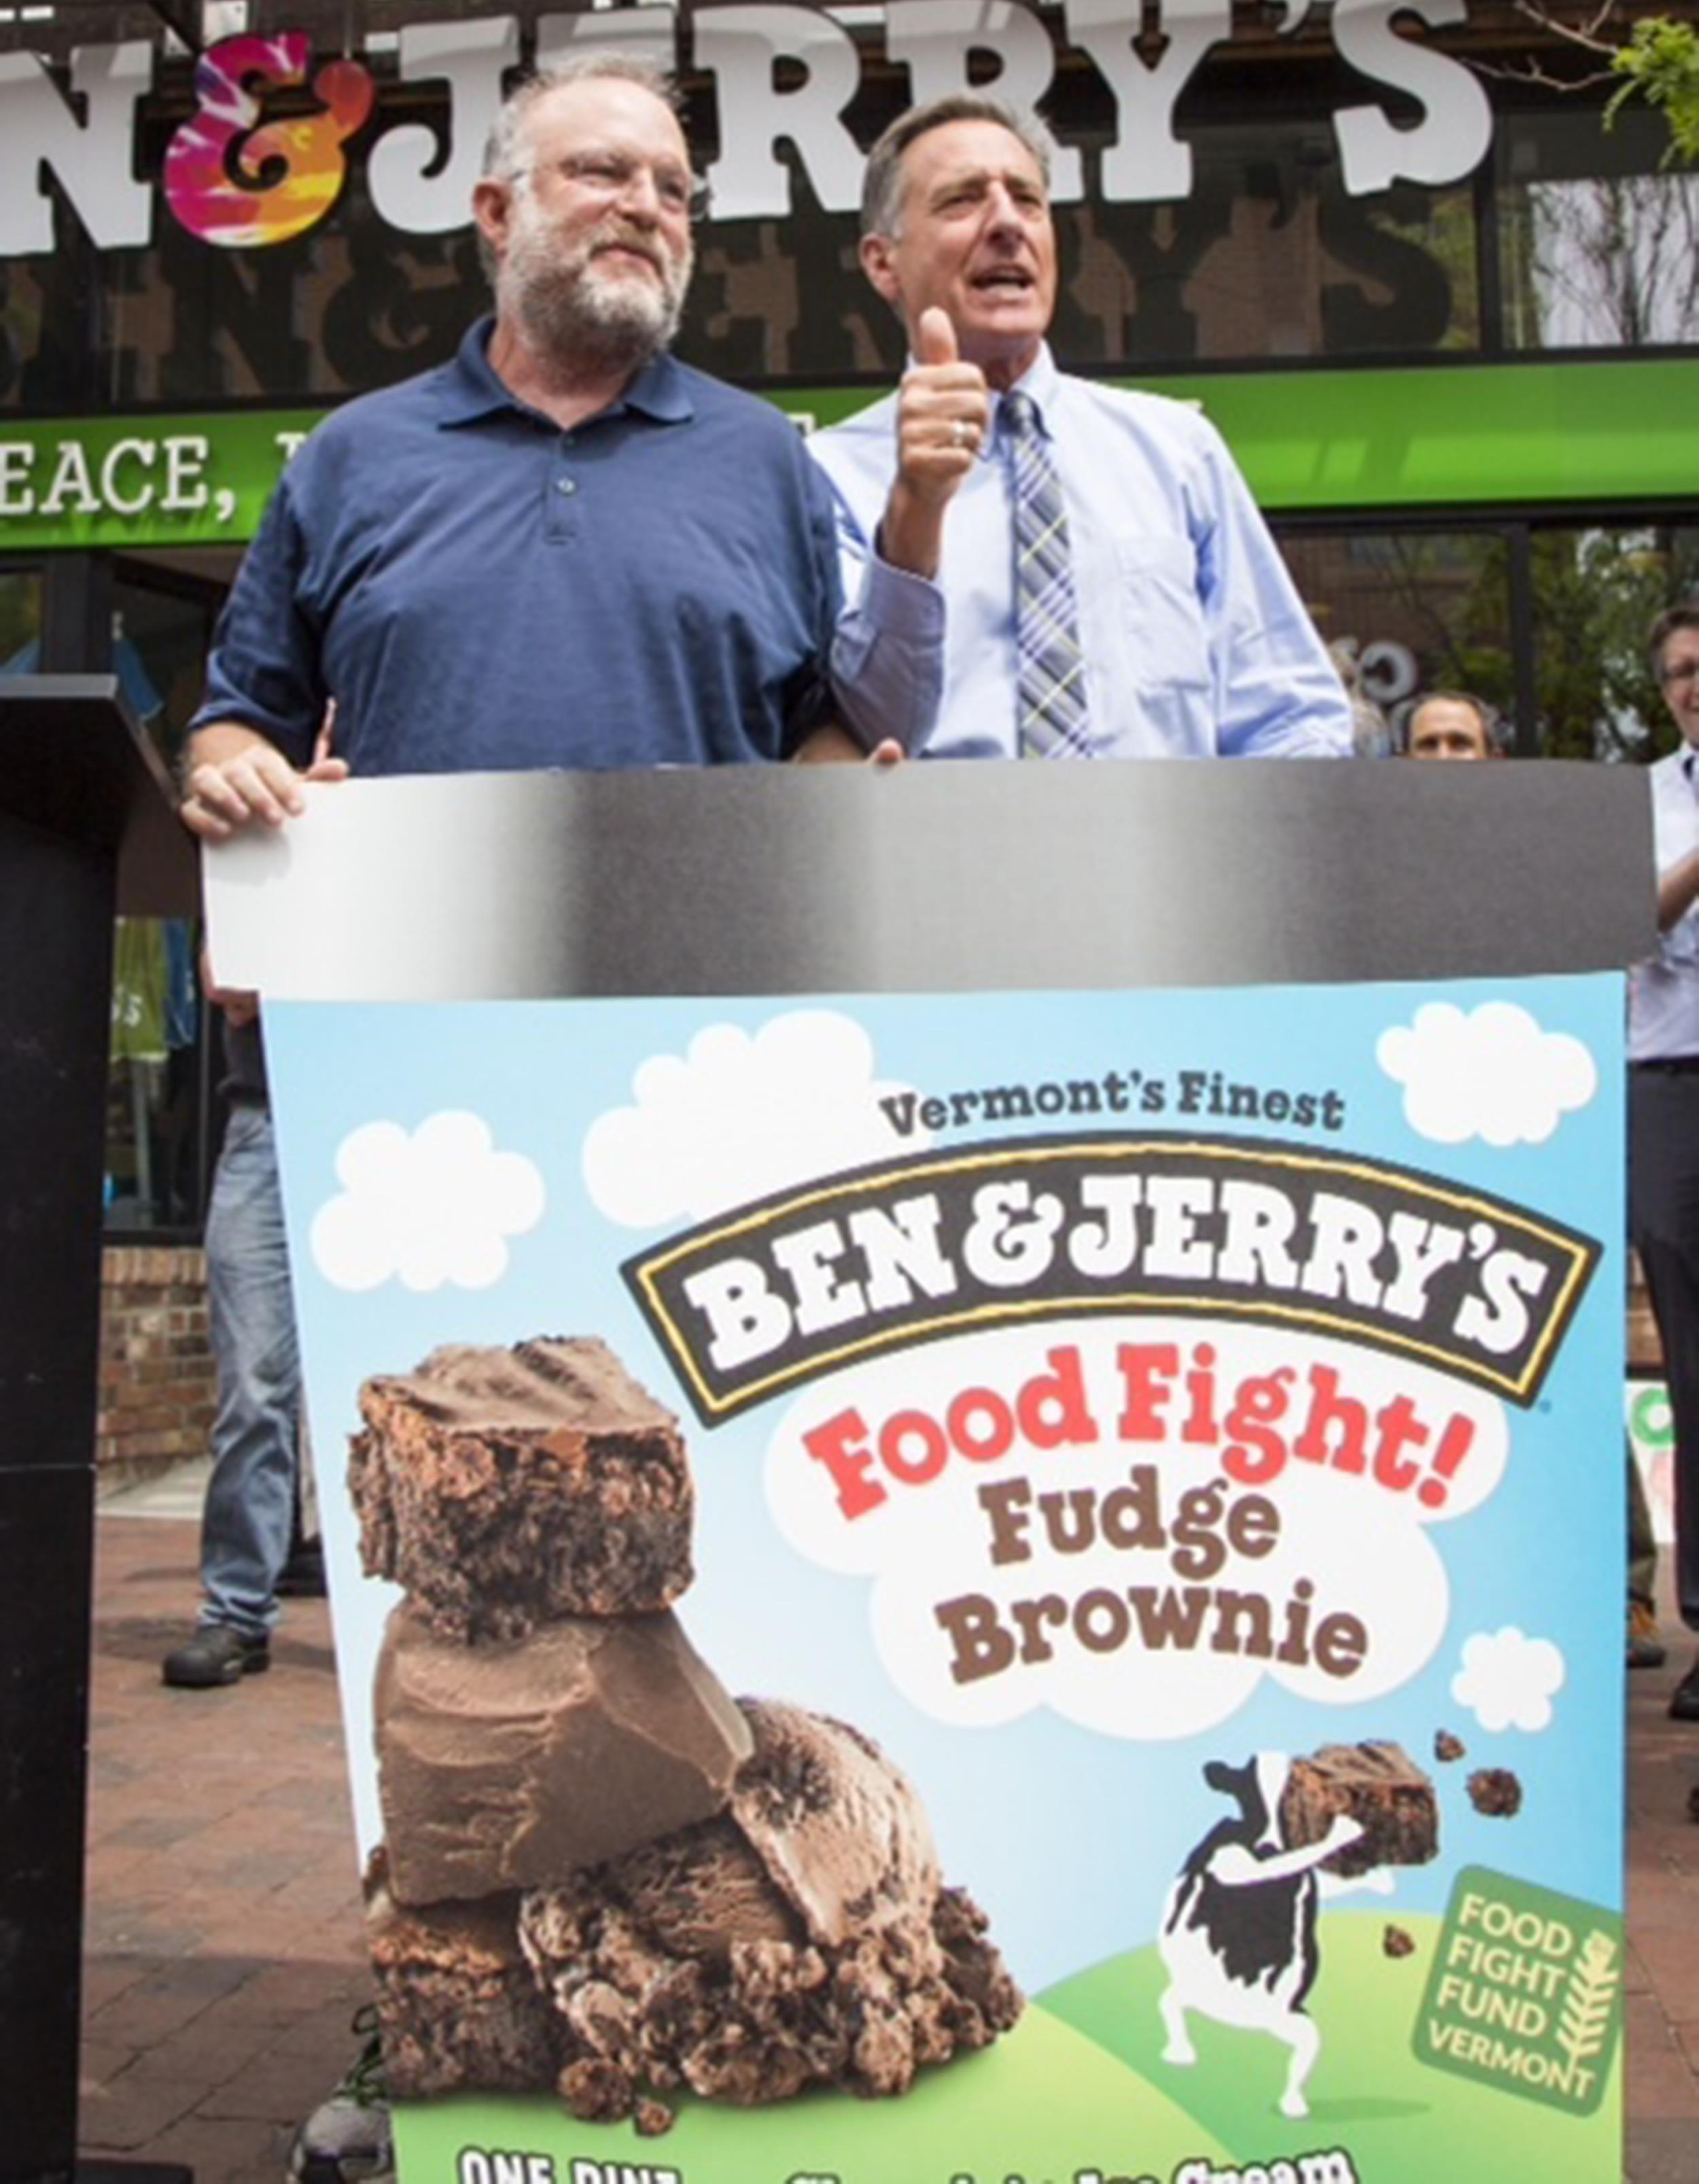 Image: Ben & Jerry's co-founder, Jerry Greenfield and Governor, Peter Shumlin unveil new Food Fight Fund flavor